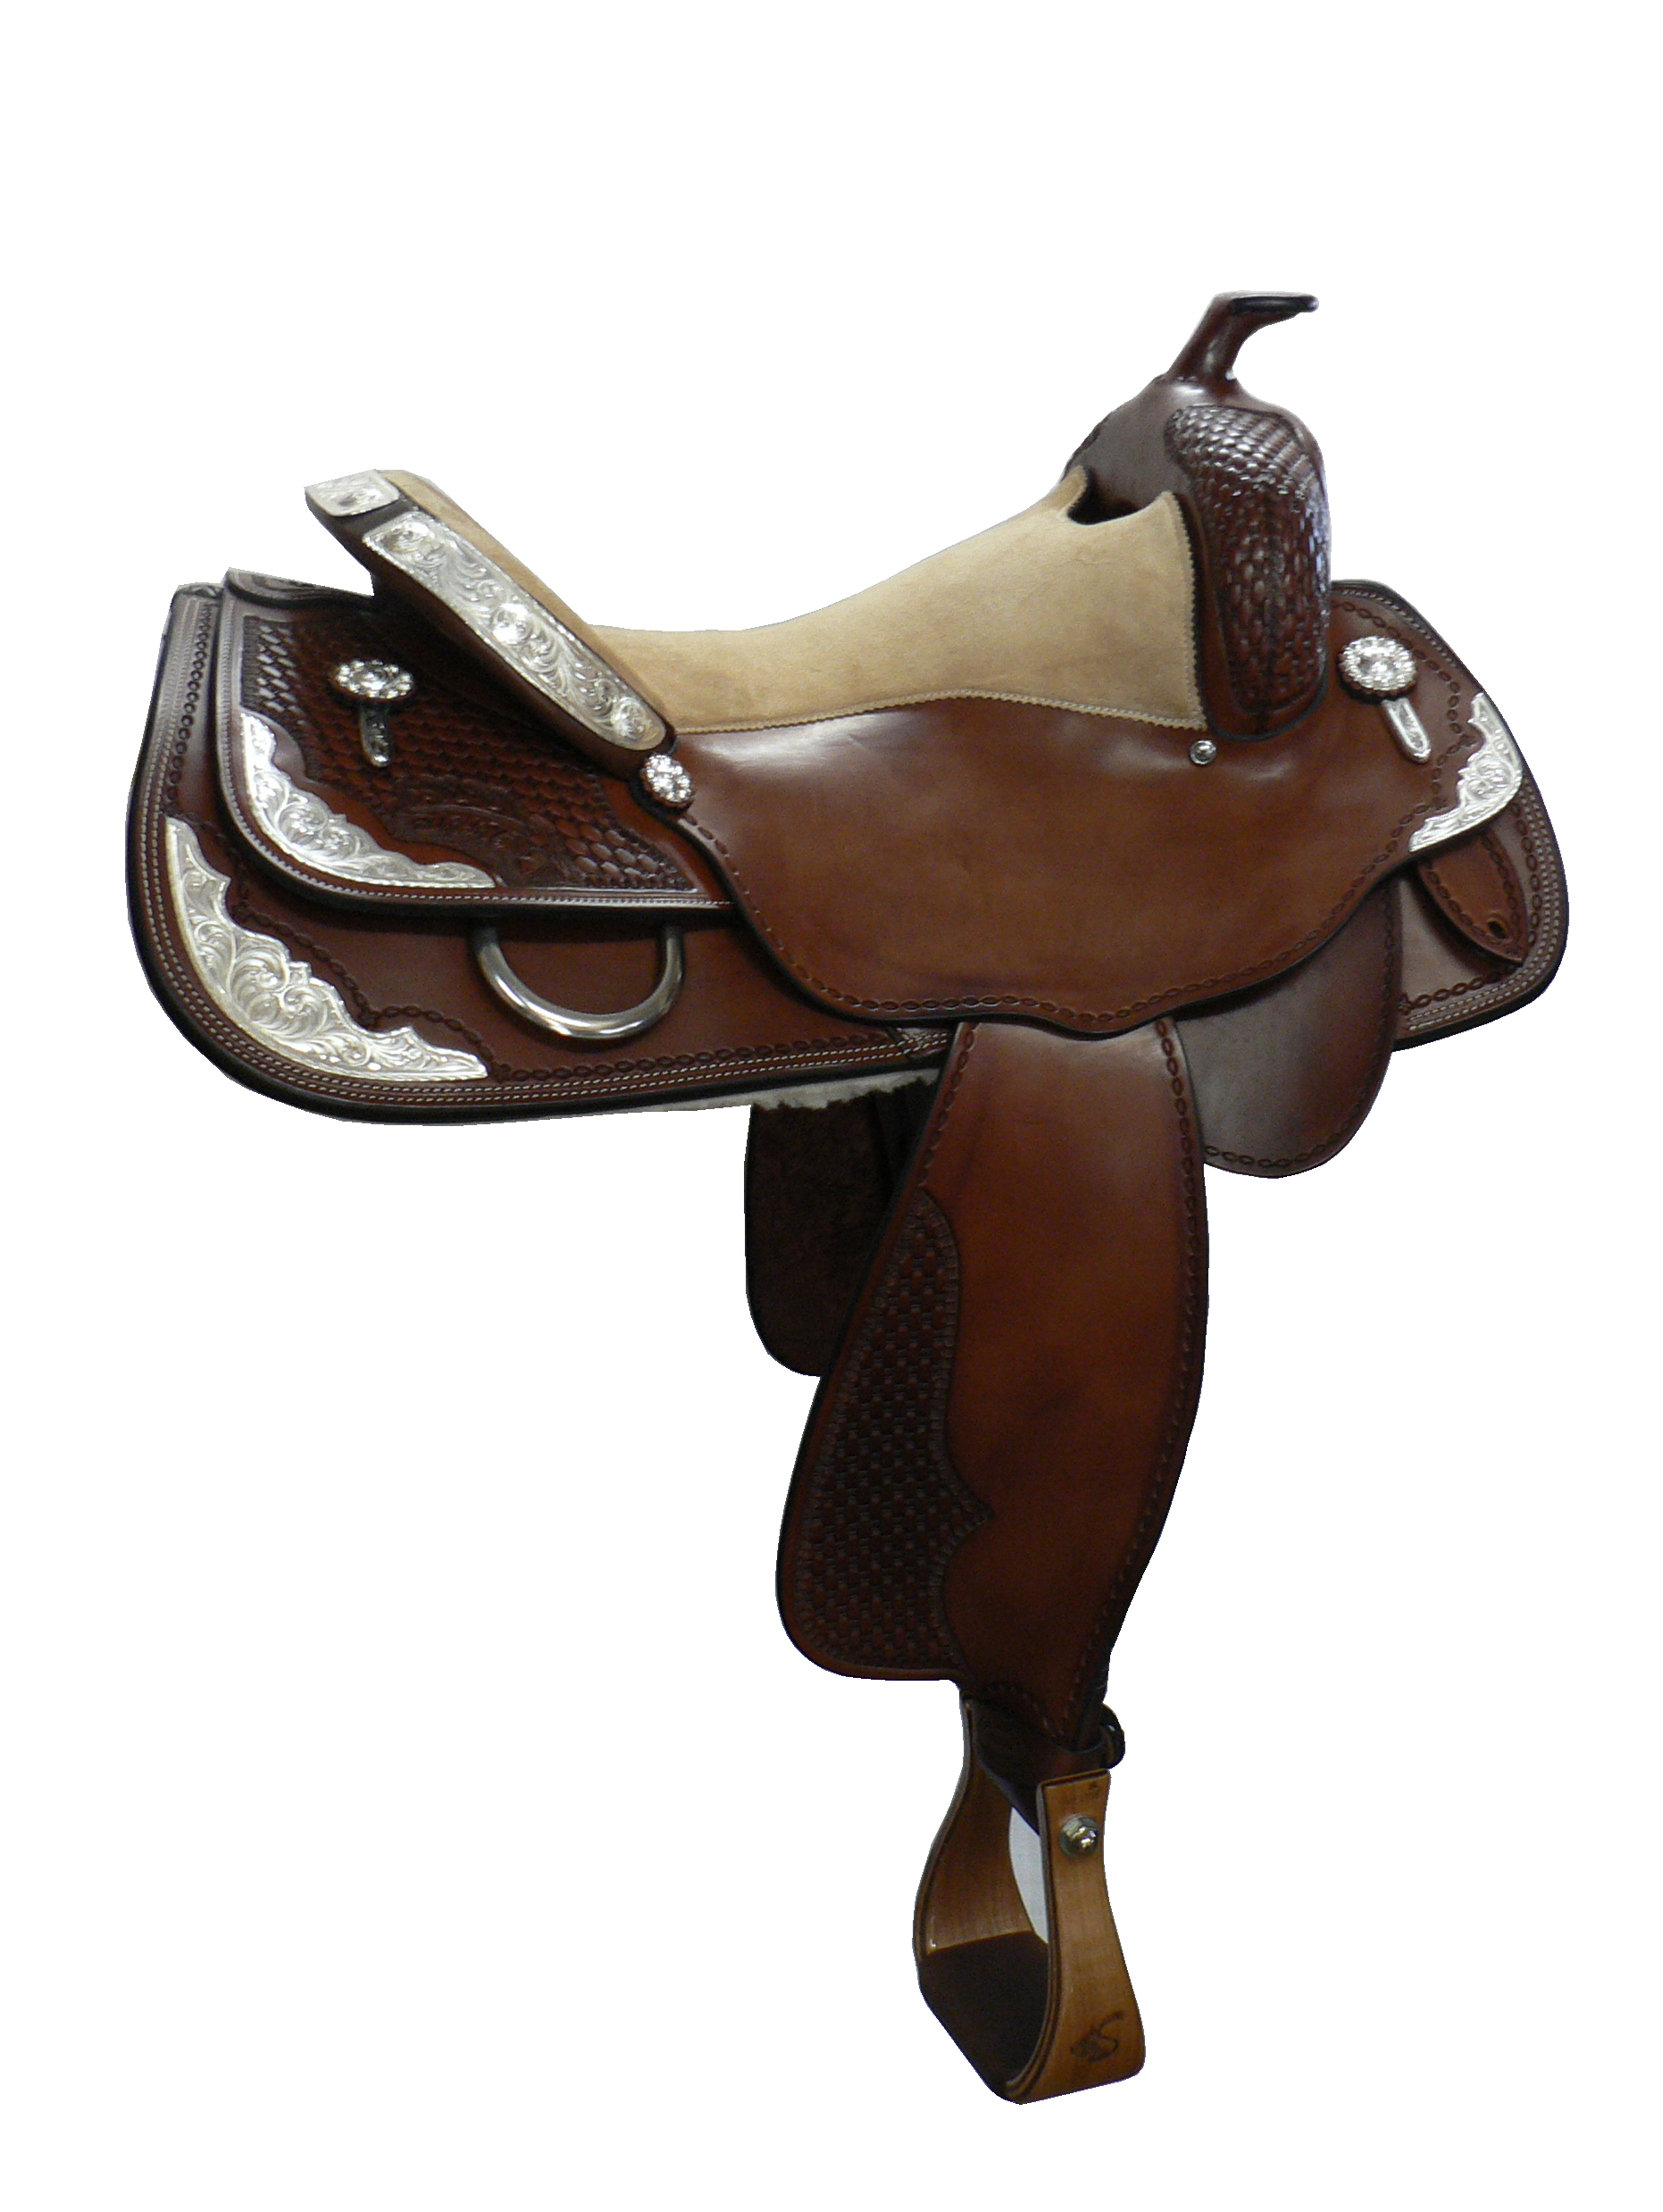 Show Saddle - This saddle made with:- Brown LeatherAll saddles come fitted with Don Orrell Rancher Stirrups & Professional's Choice VenTECH Western Girth. Add ons:- Small, Medium and Large Silver Corner Plates- 3 Piece Silver Cantle Plates- Silver Conchos- Silver Tips- Edge Stamping- Basketweave Swell, Jockey and Fender- Carving